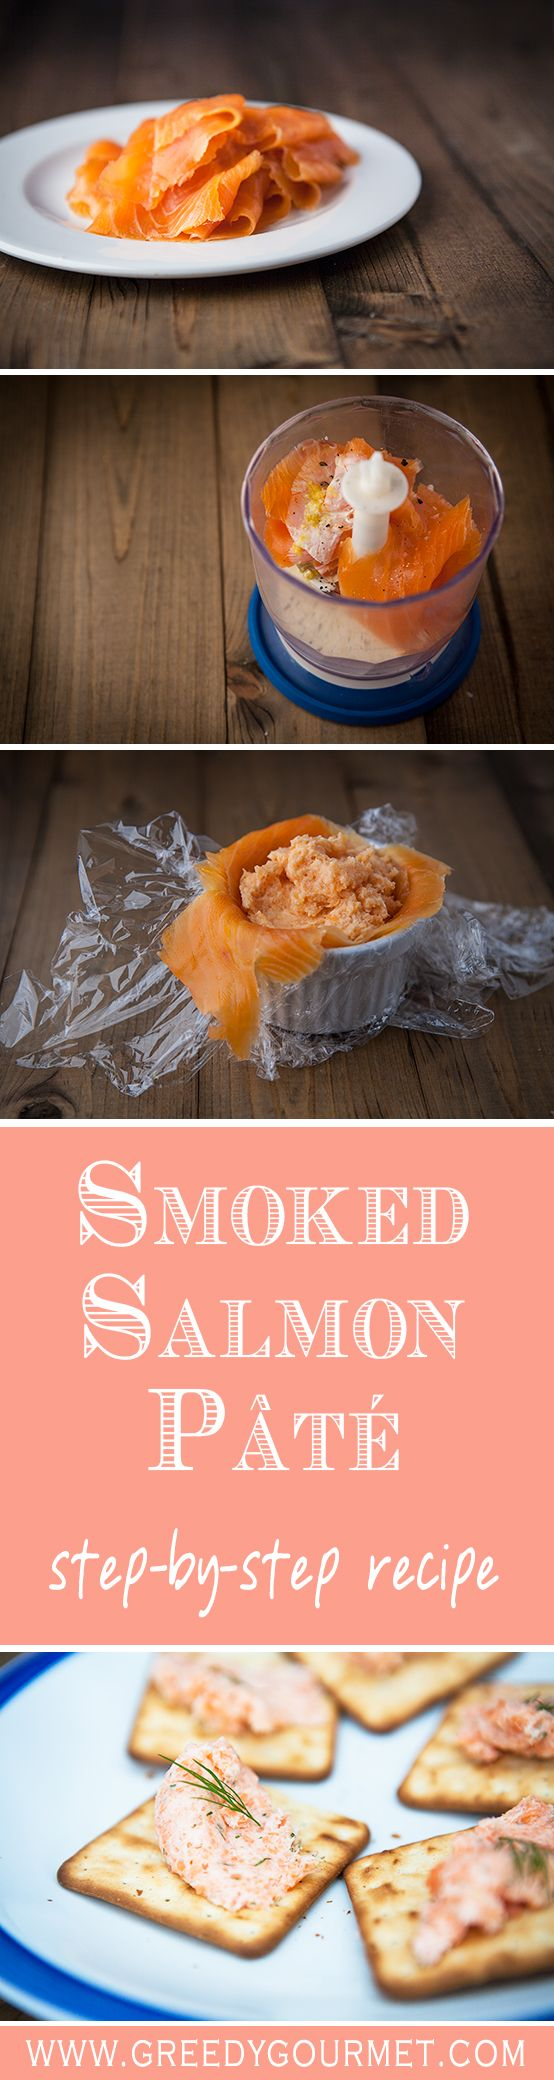 Smoked Salmon Pâté is a sophisticated starter that is super easy to make - under 5 minutes flat!